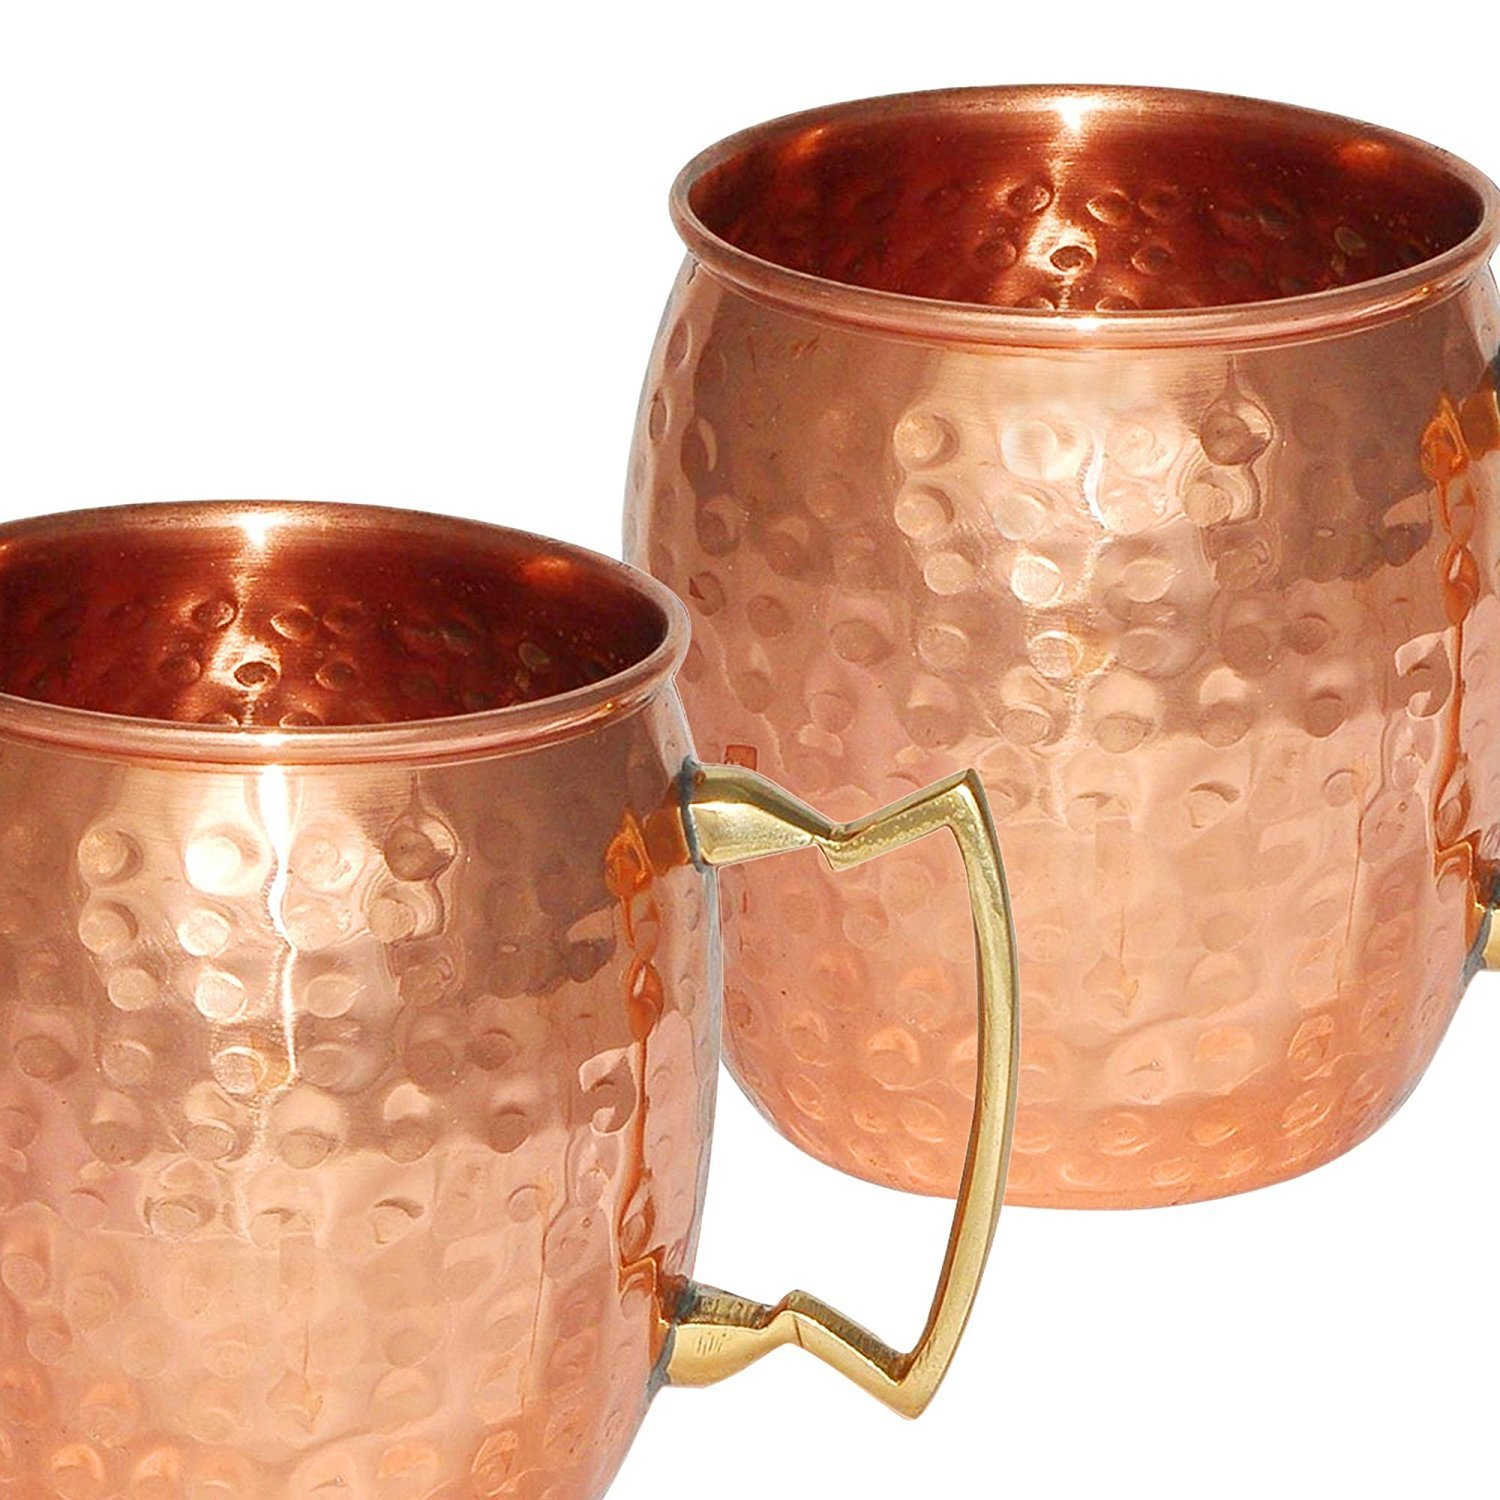 DreamKraft Hamme Copper Moscow Mule Mug Handmade Of Copper With Brass Handle 550 ML Gold by DreamKraft (Image #3)